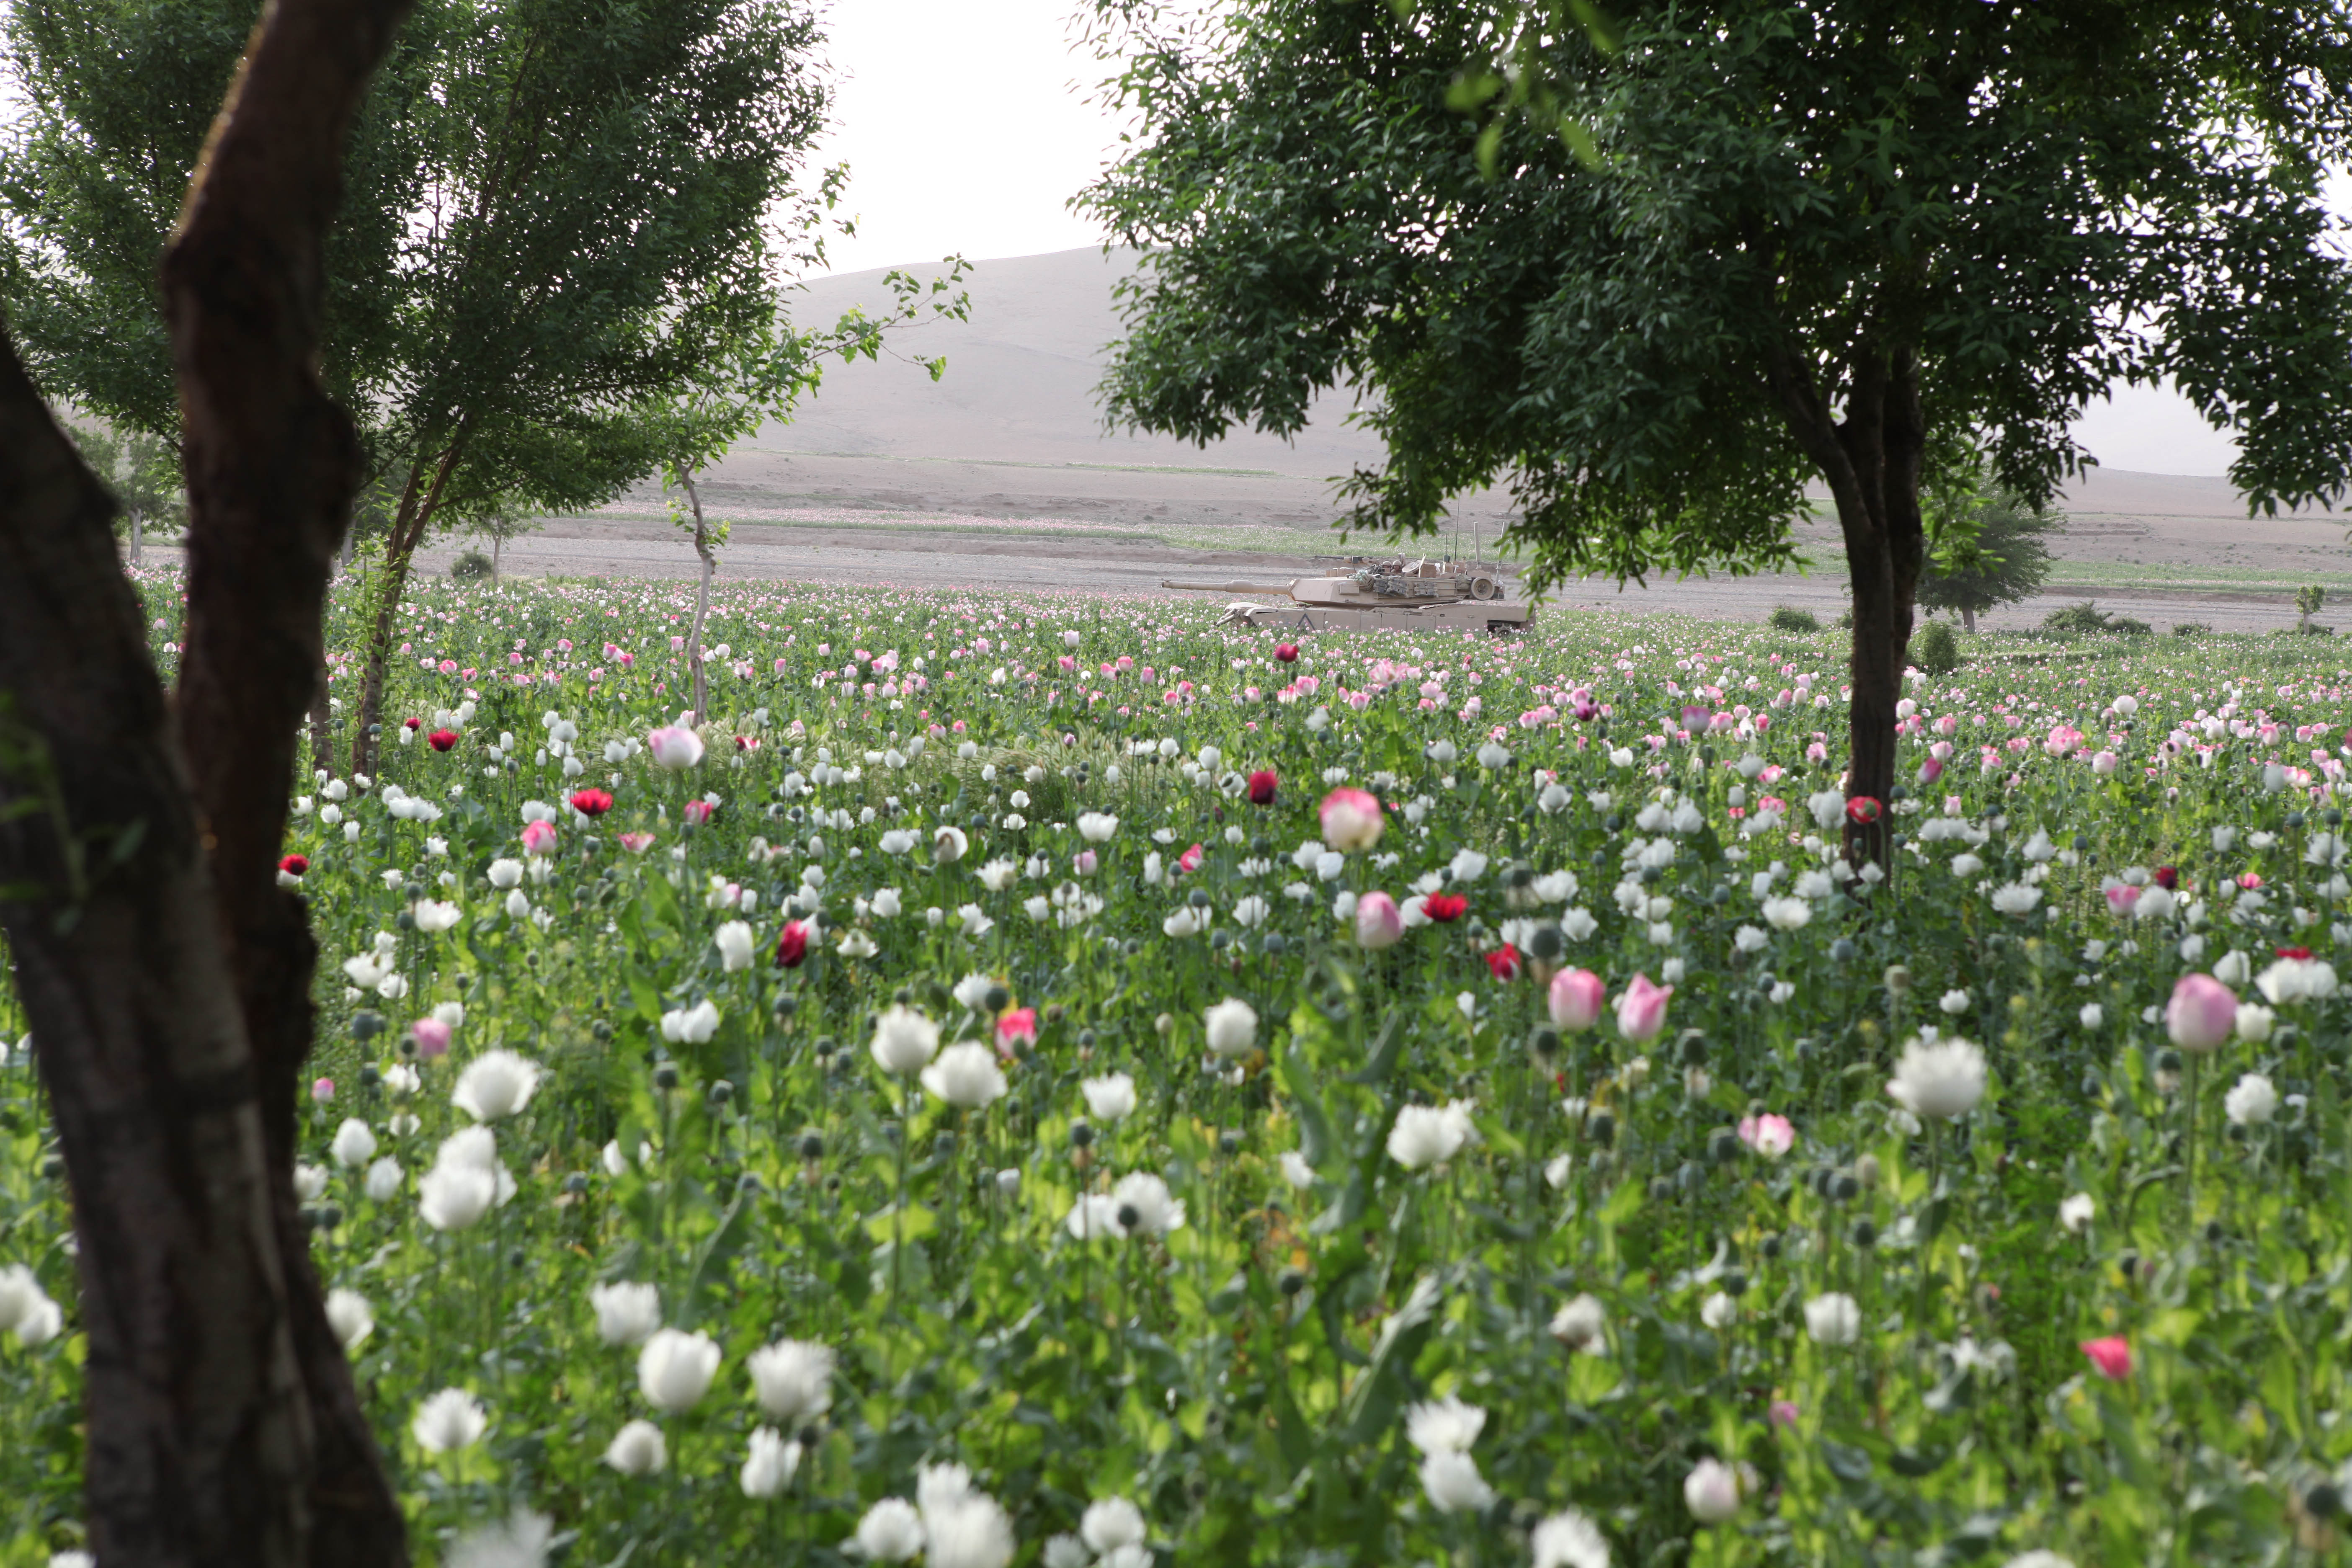 Opium production in Afghanistan - Wikipedia